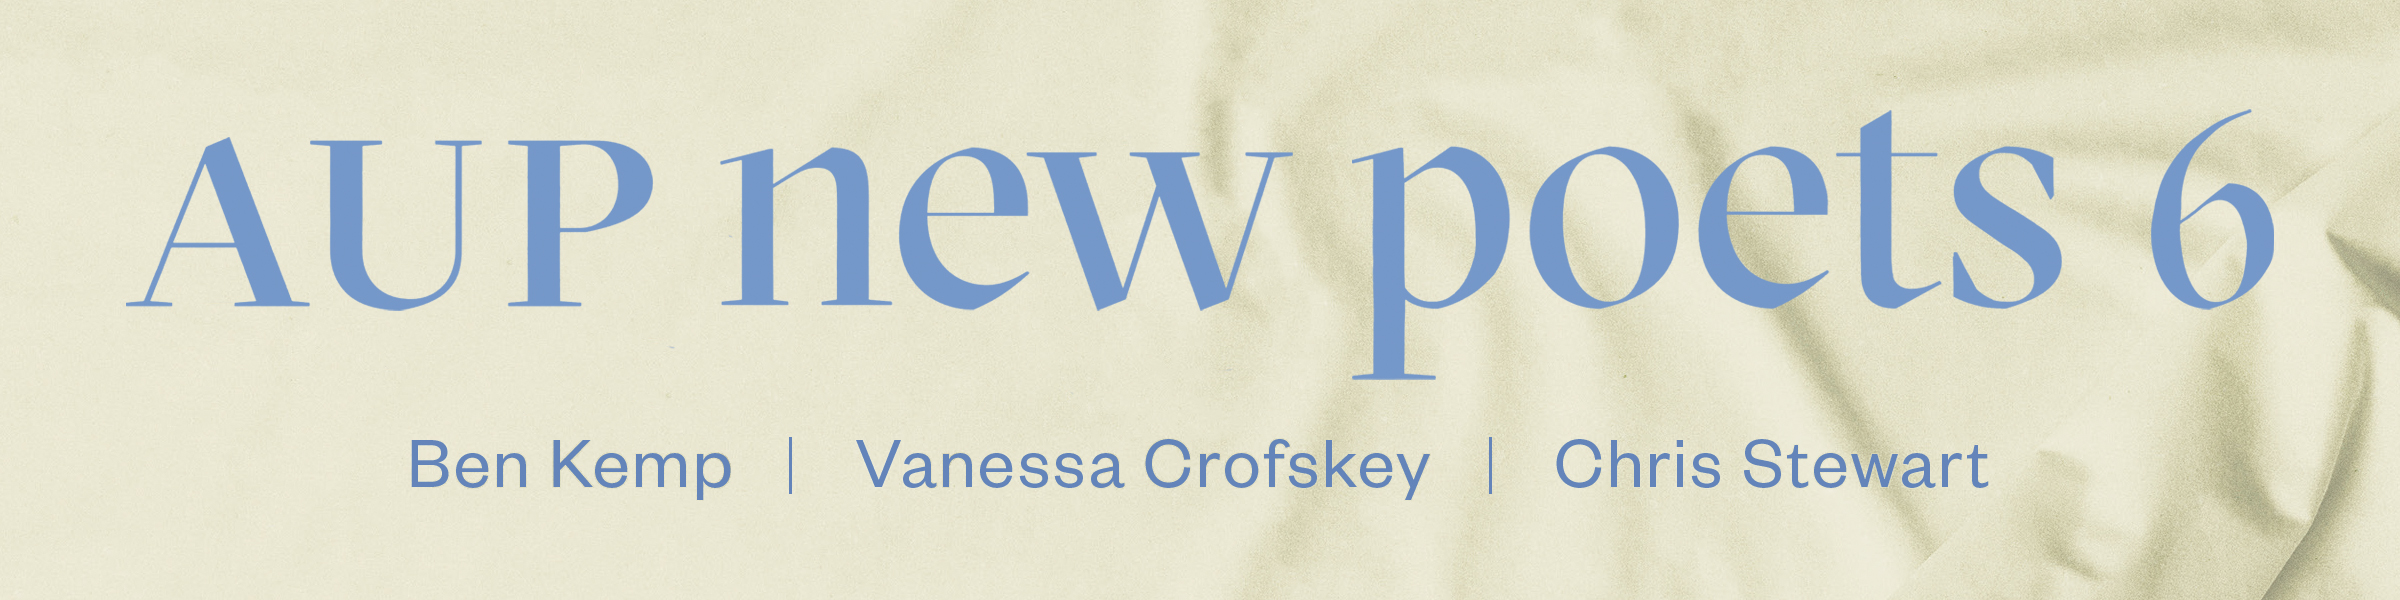 AUP NEW POETS 6 by Ben Kemp, Vanessa Crofskey and Chris Stewart